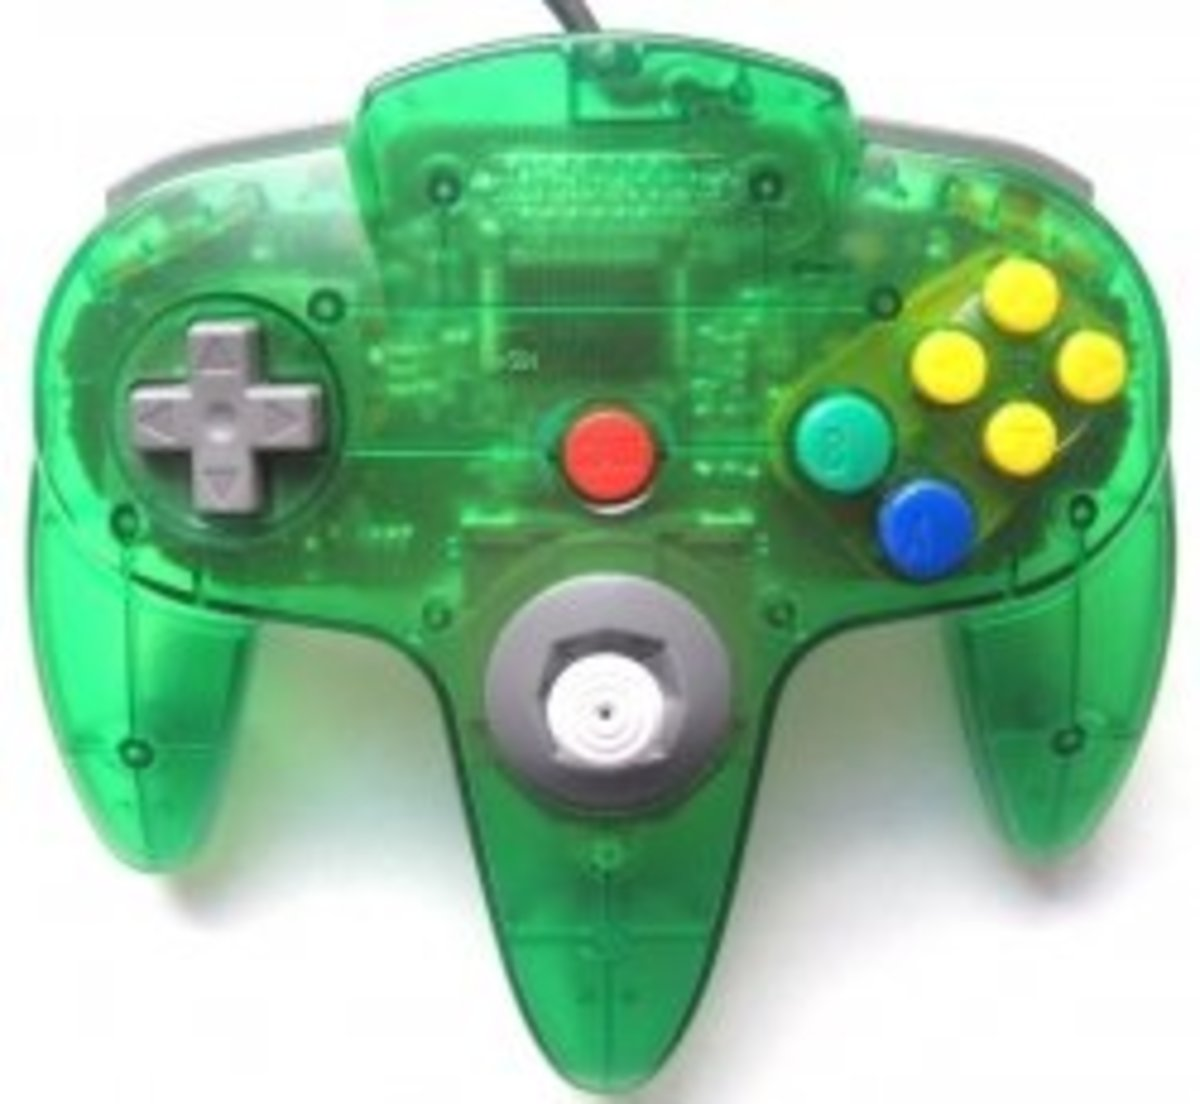 Nintendo 64 (N64) Controllers: All You Ever Wanted to Know